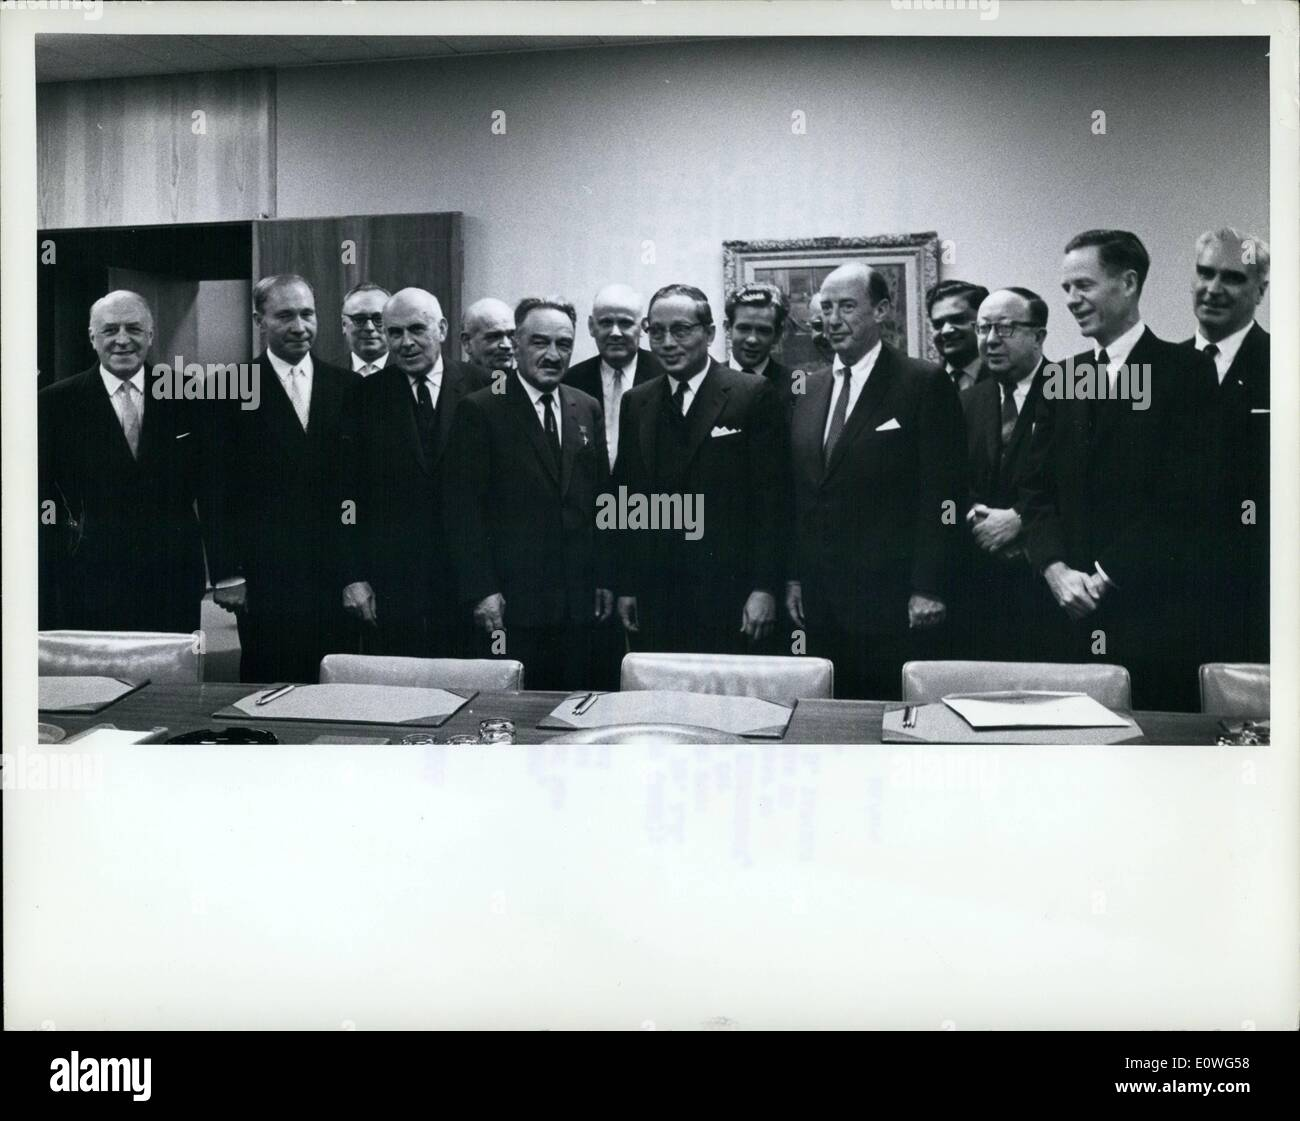 Nov. 11, 1962 - Deputy Premier of The USSR Confers With UN Acting Secretary-General On The Cuban Situation. Mr. Anastas I. Mikoyan (4th from left), Deputy Premier of the USSR, is seen with U Thant (5th from left0, Actin Secretary-General of the United Nations, and representatives of the interested parties as talks continued at United Nations Headquarters on unsettled phases of the Cuban situation. Front row (l. to r.): Mr. V.A. Zorin (USSR); Mr. V.V. Kuznetsov (USSR); Mr. J.J. McCloy (United States); Mr. C.W. Yost (United States). Back row: Mr. L.I. Mendelevich (USSR); Mr. O - Stock Image